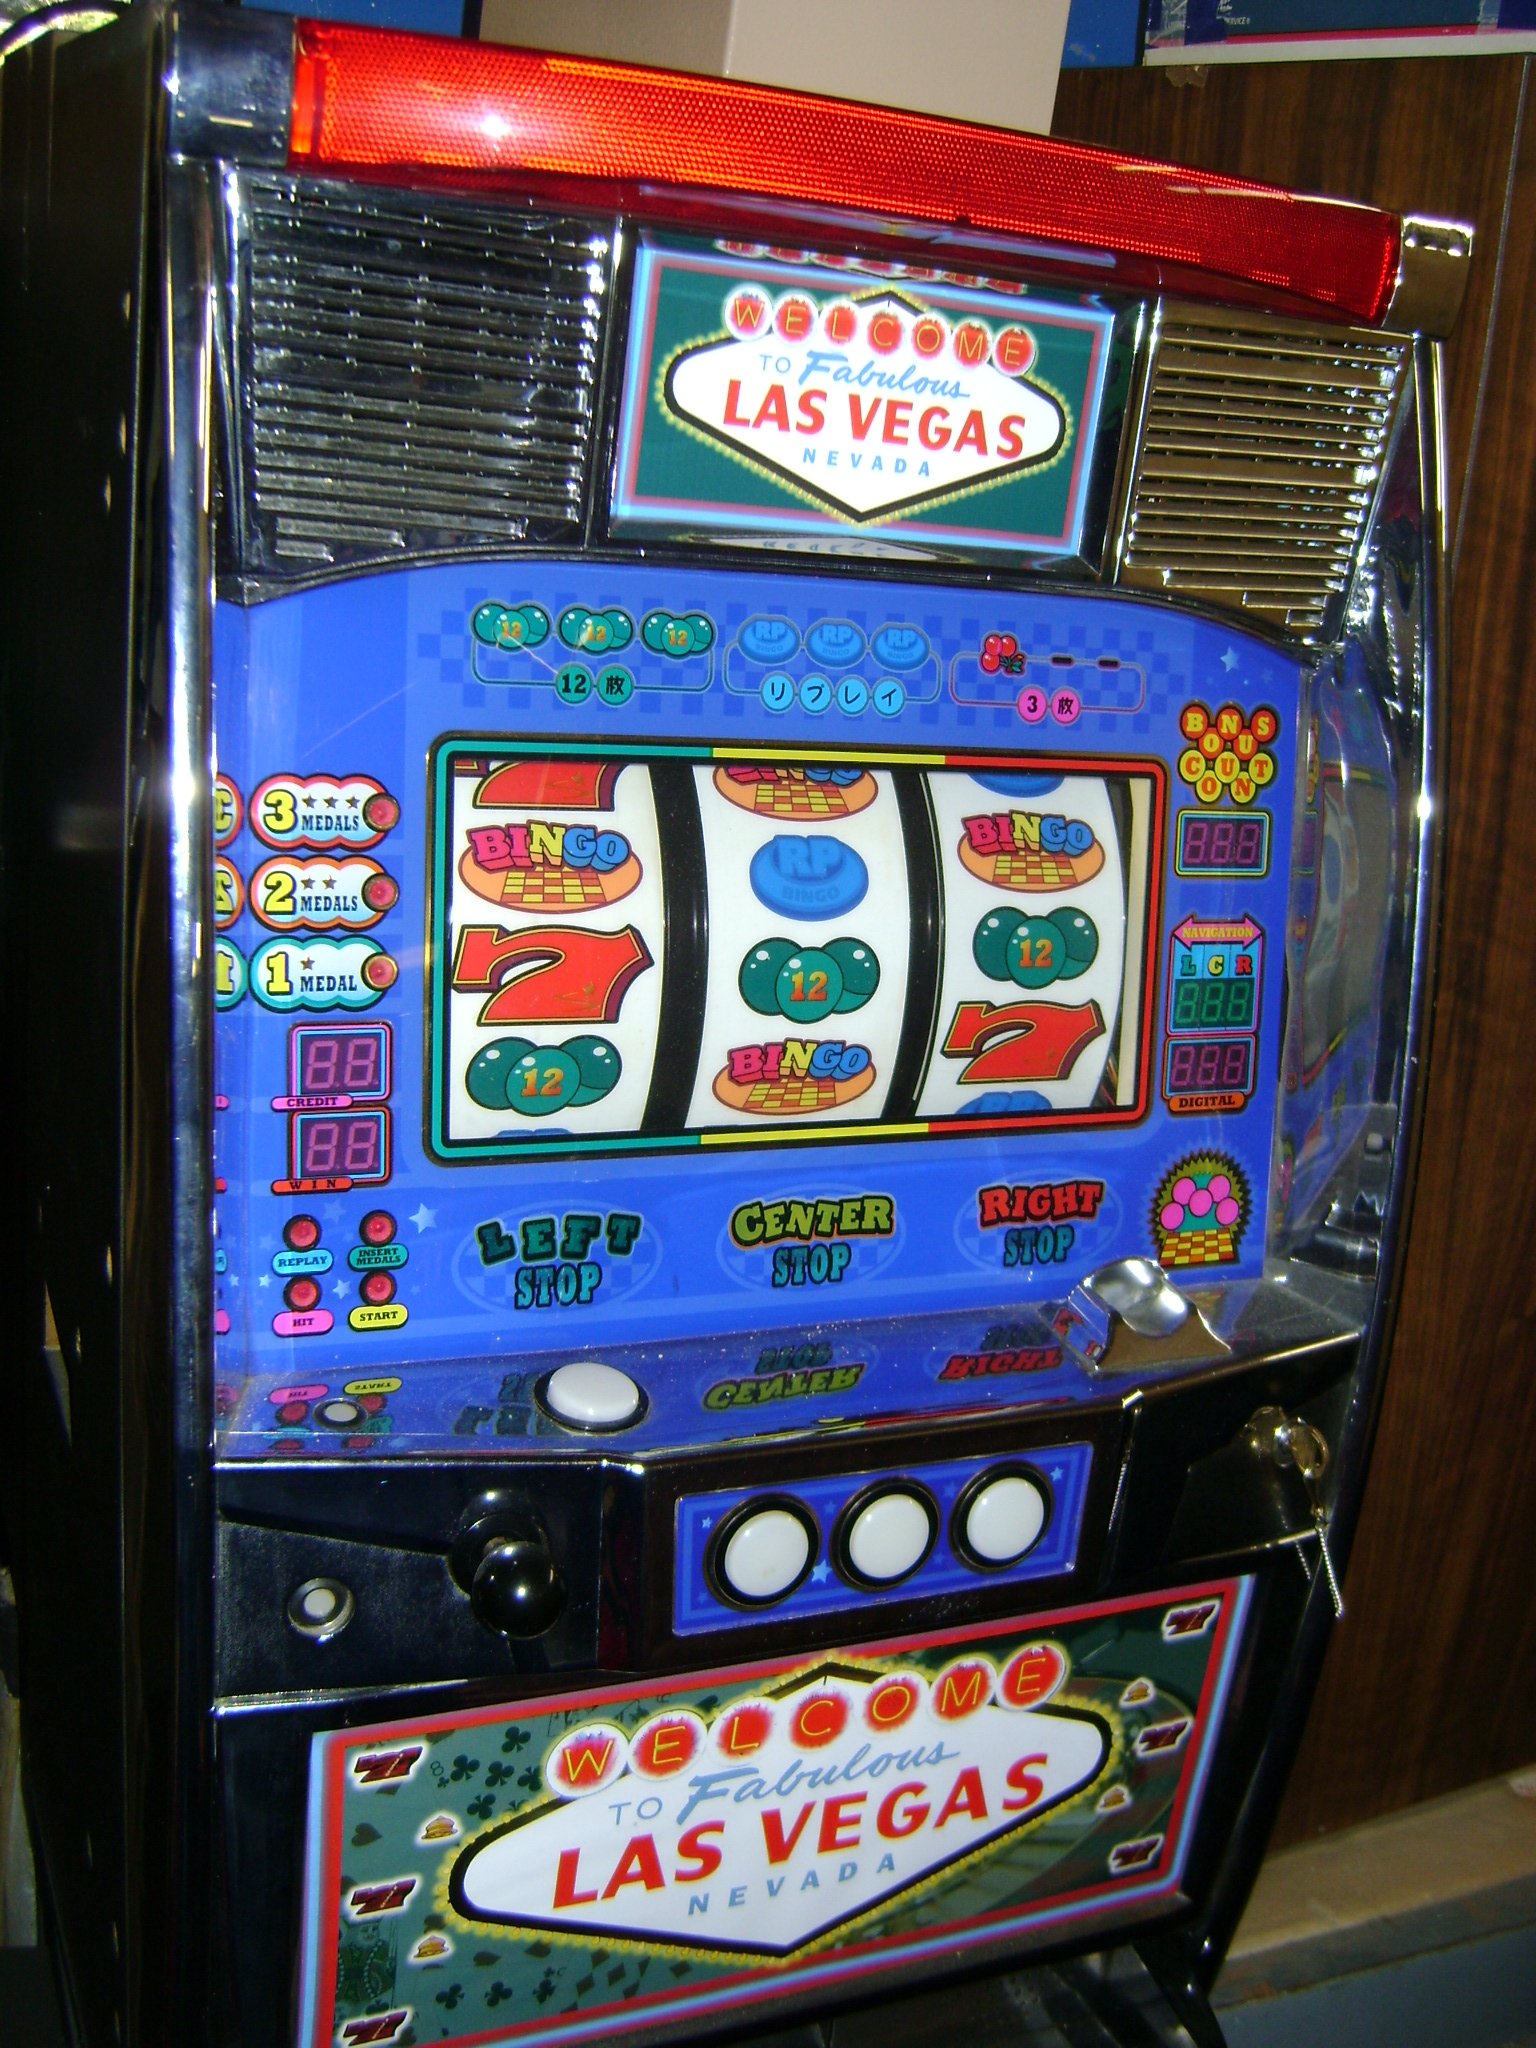 La repubblica slot machine